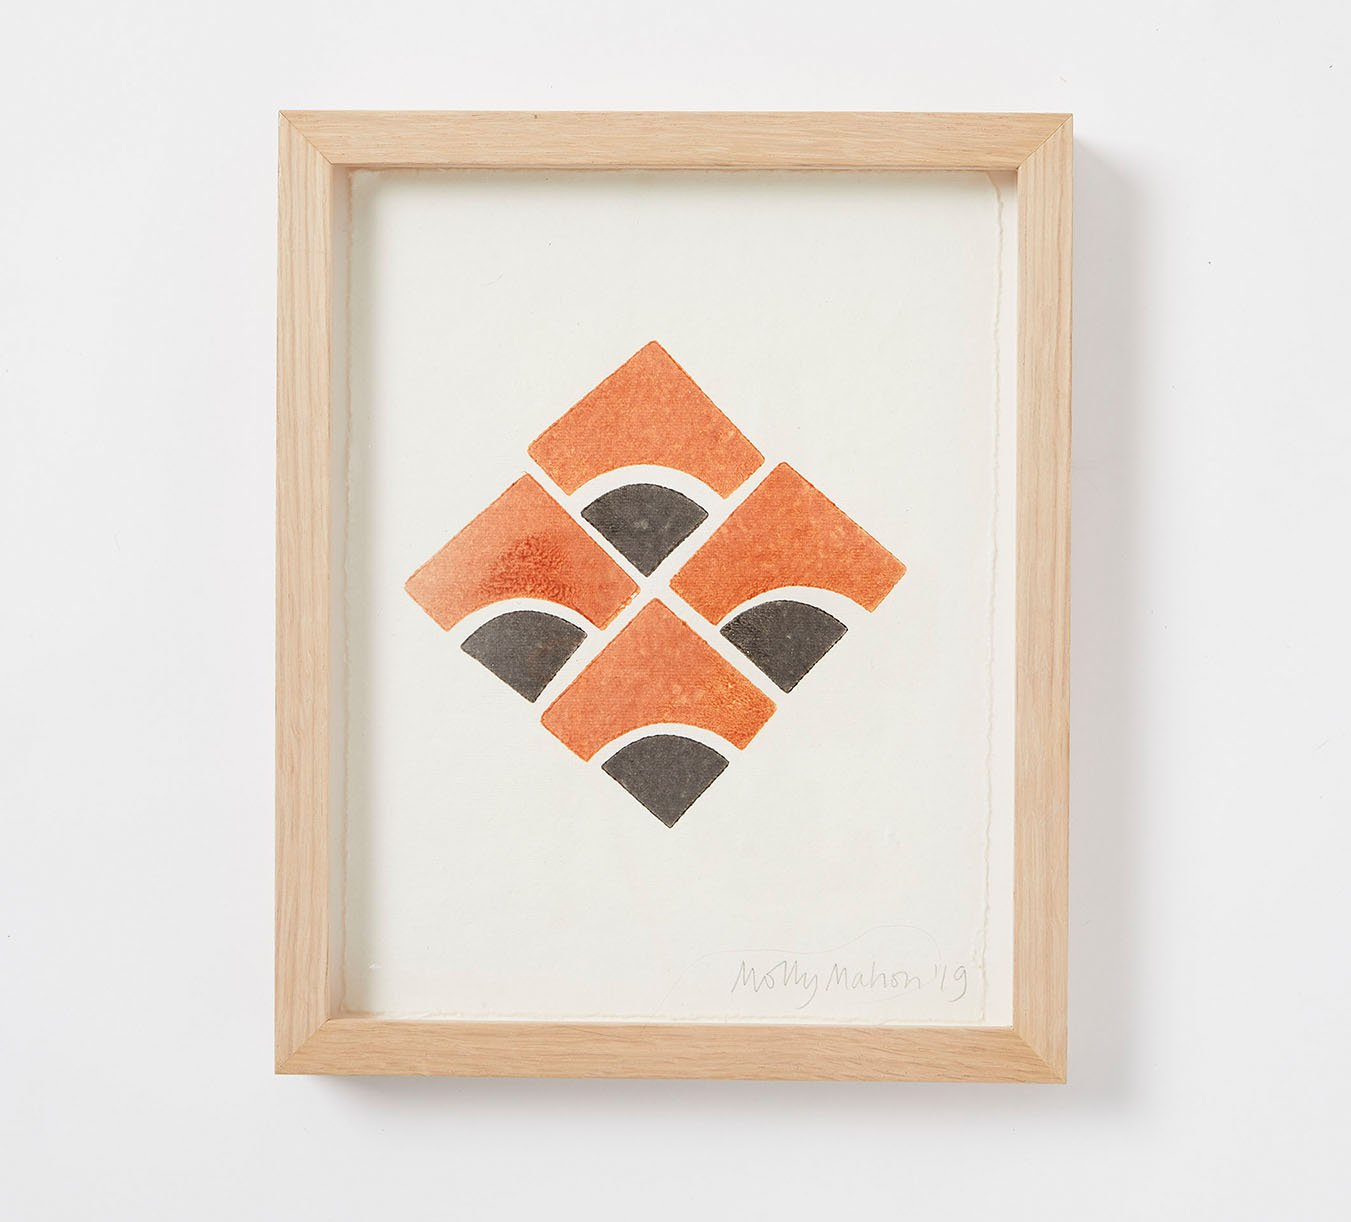 Framed - Cotton Paper Print - Kite - Rust